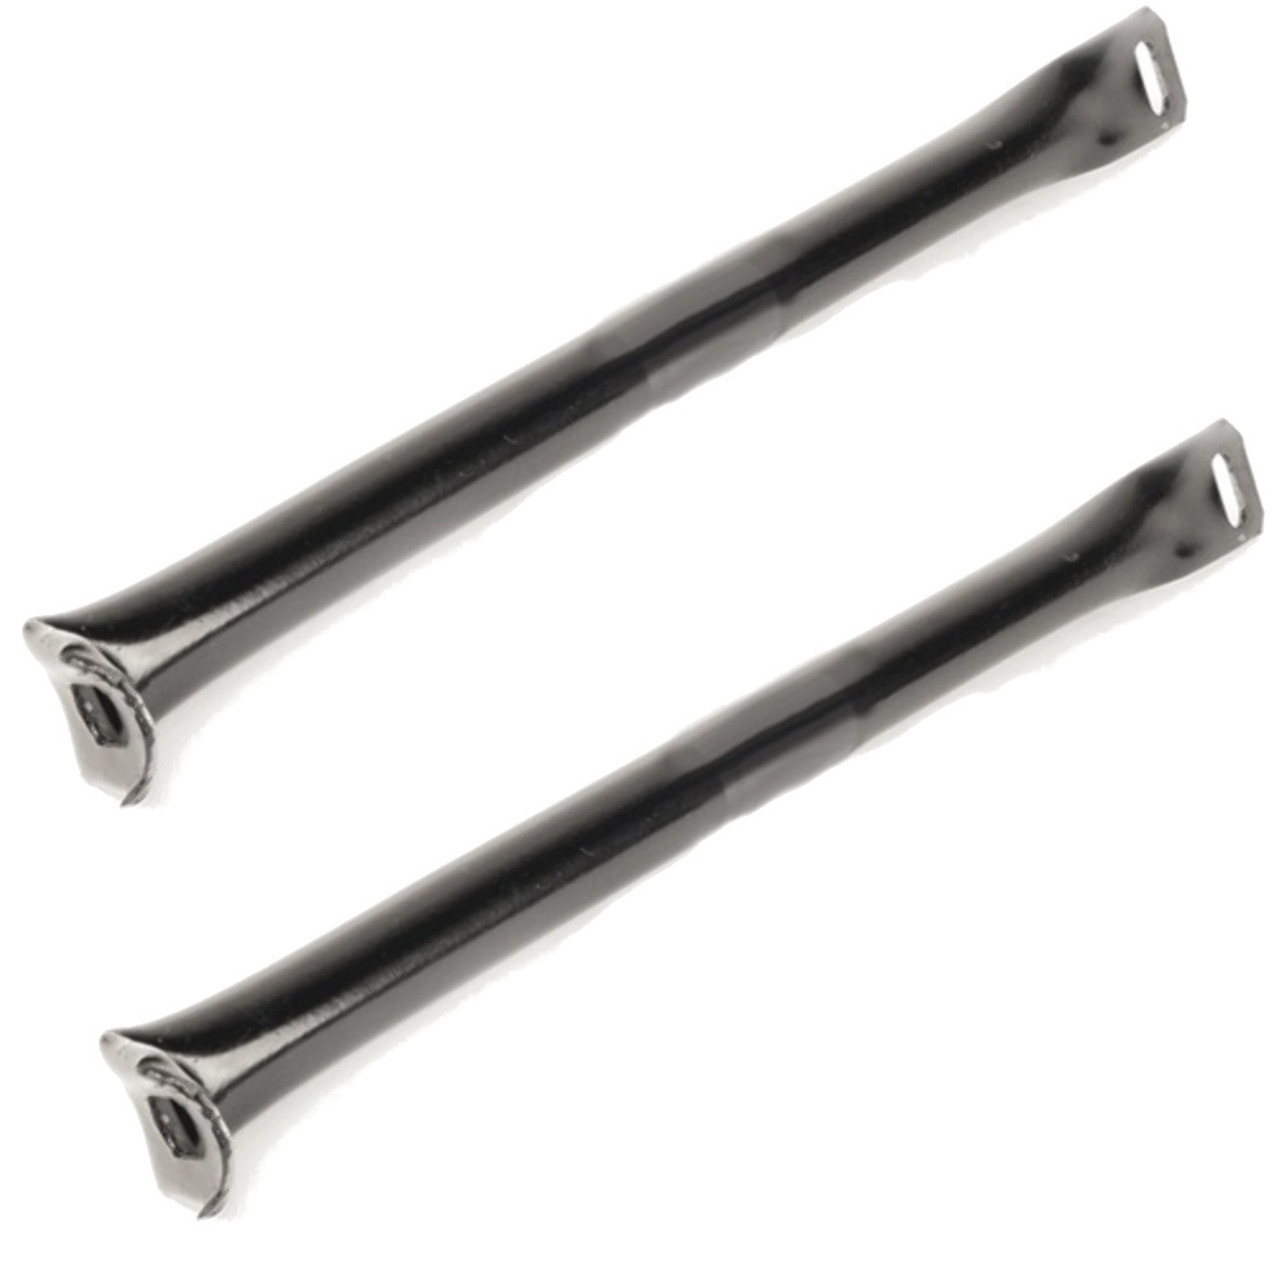 Rear Bumper Support Tube, Over Rider Brackets, Pair, Black, Fits Type 1 Bug 1955-1967